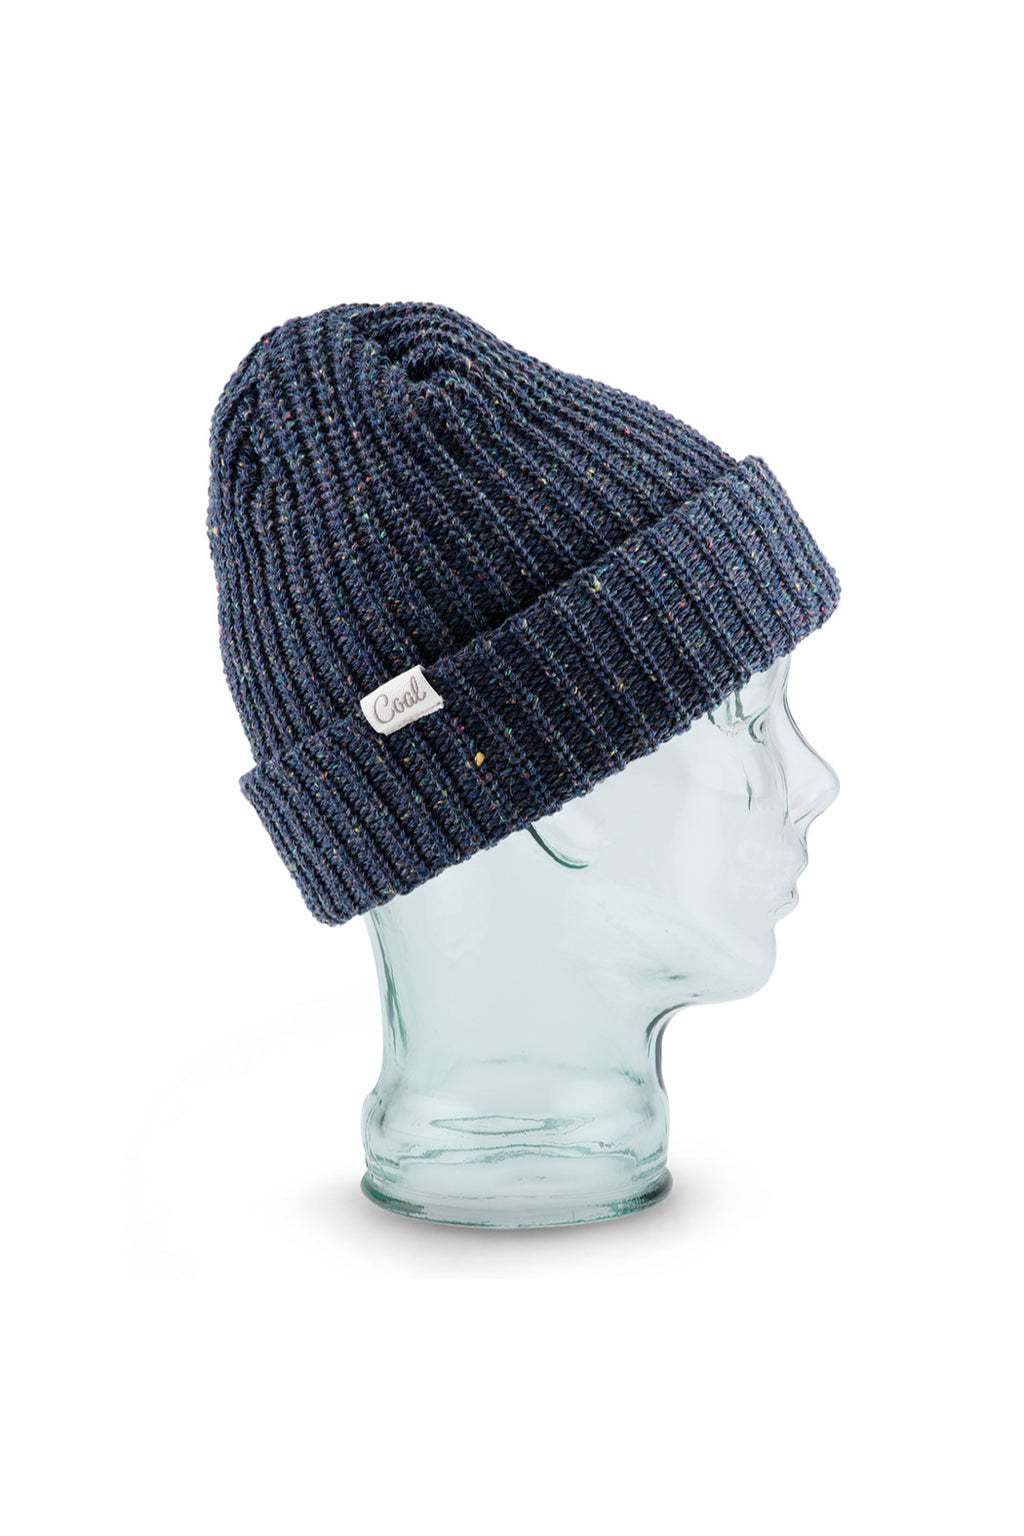 Coal Edith Beanie in Navy